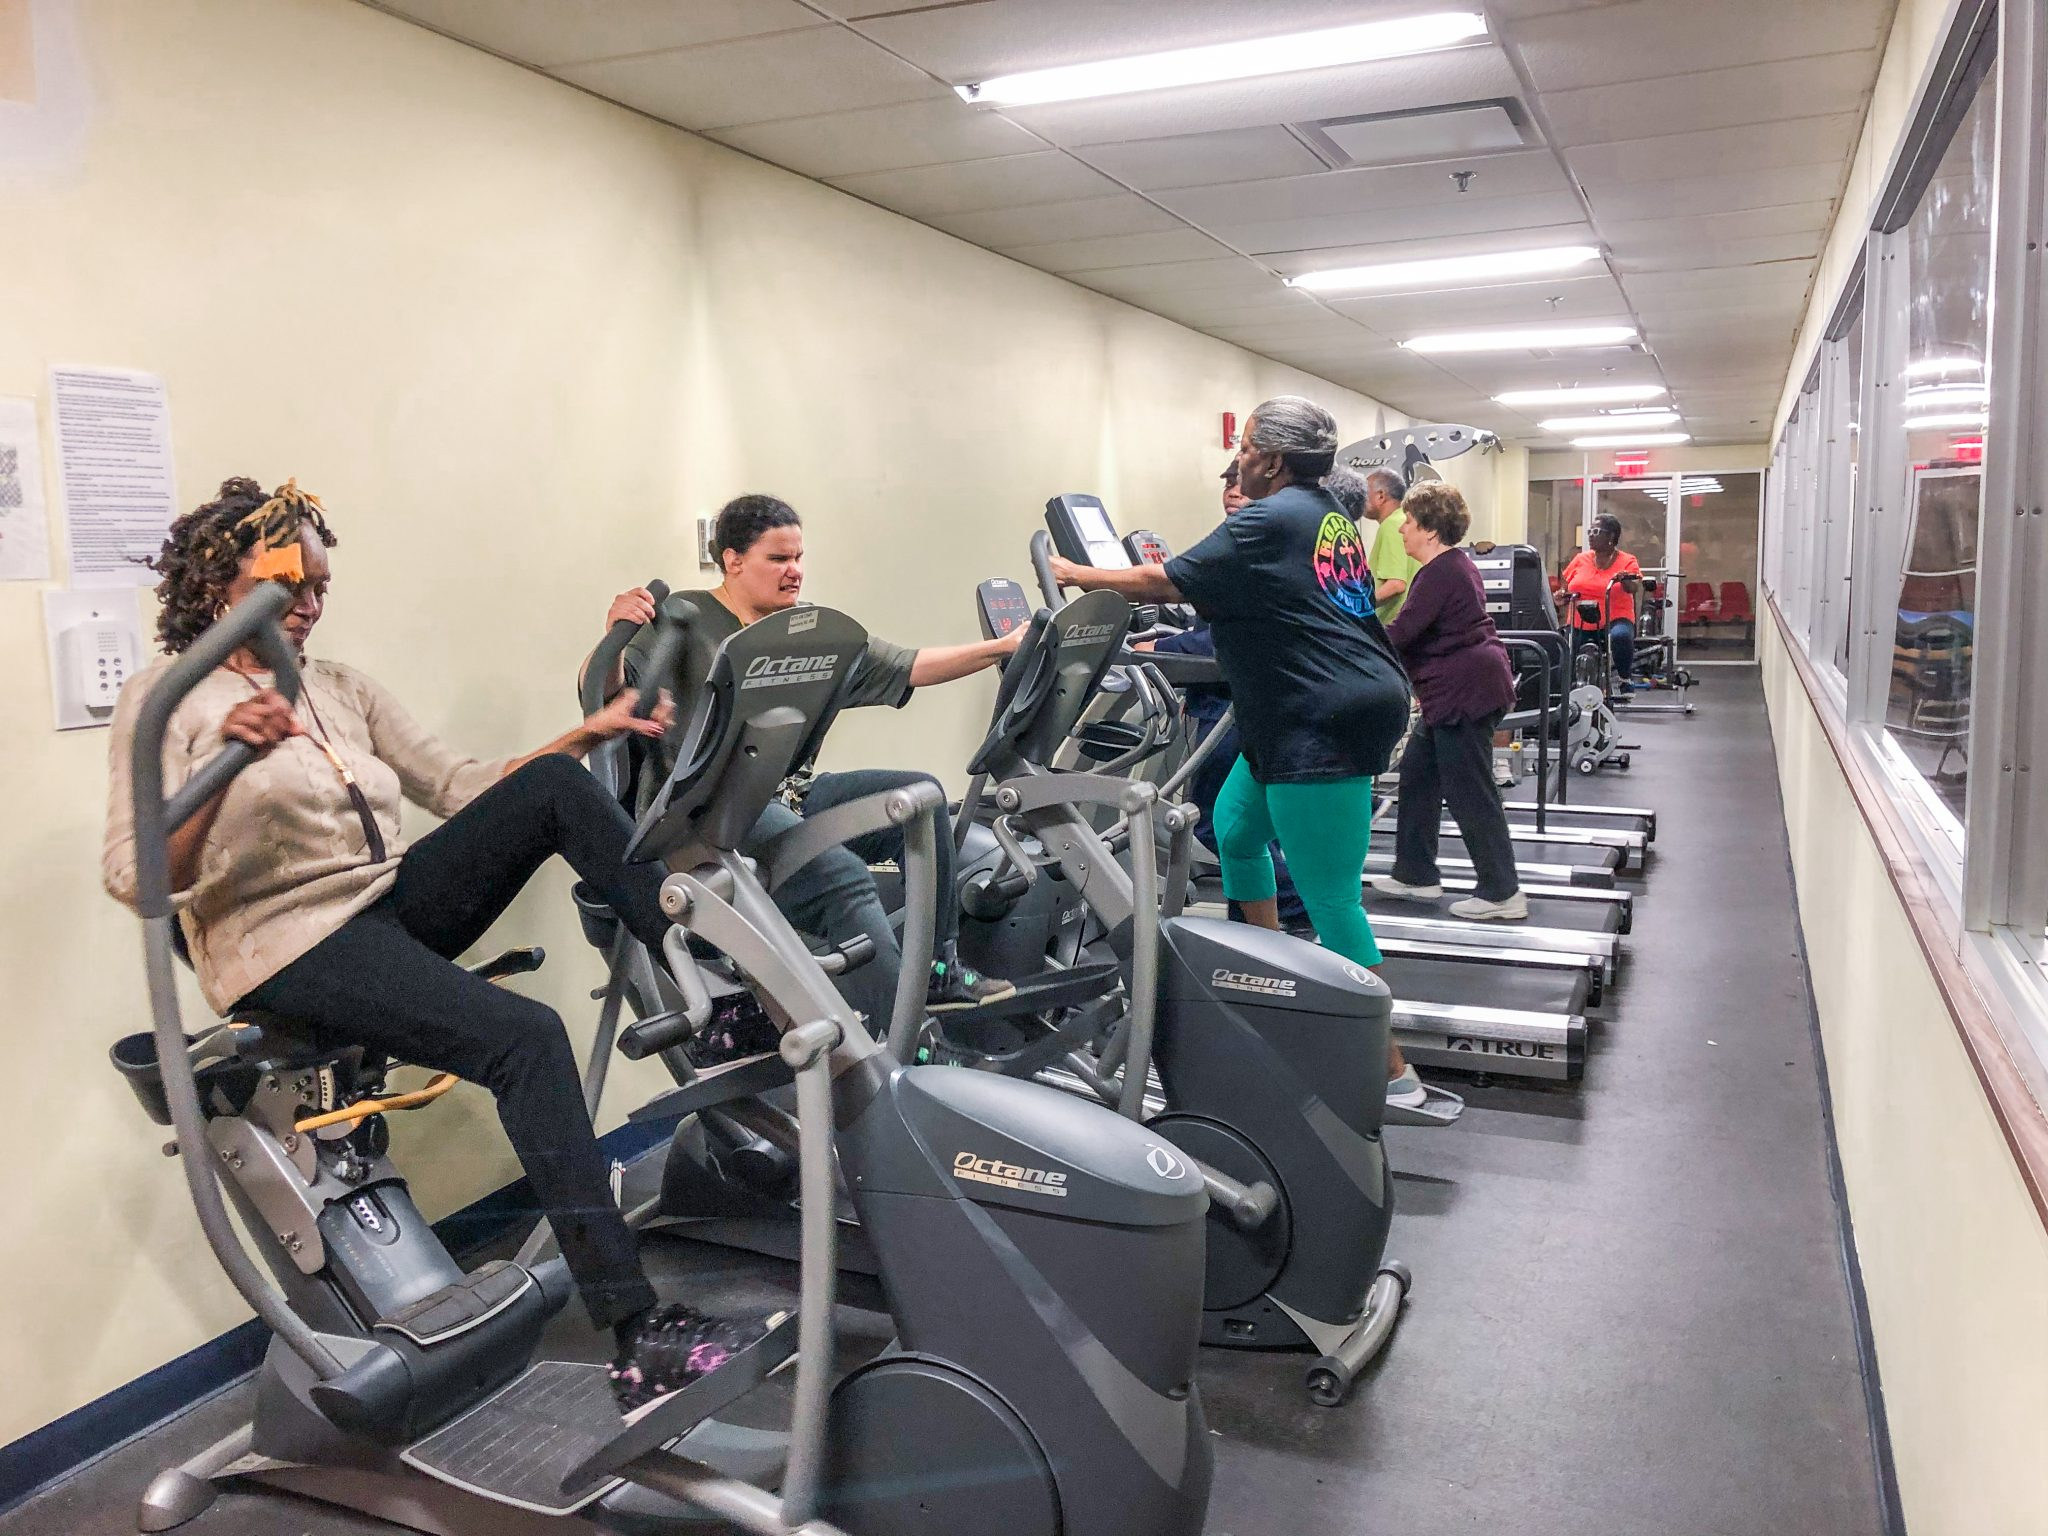 A group of older adult participants at VISIONS Center on Aging use tredmills, elipticals, and other exercise equipment in a large gymnasium